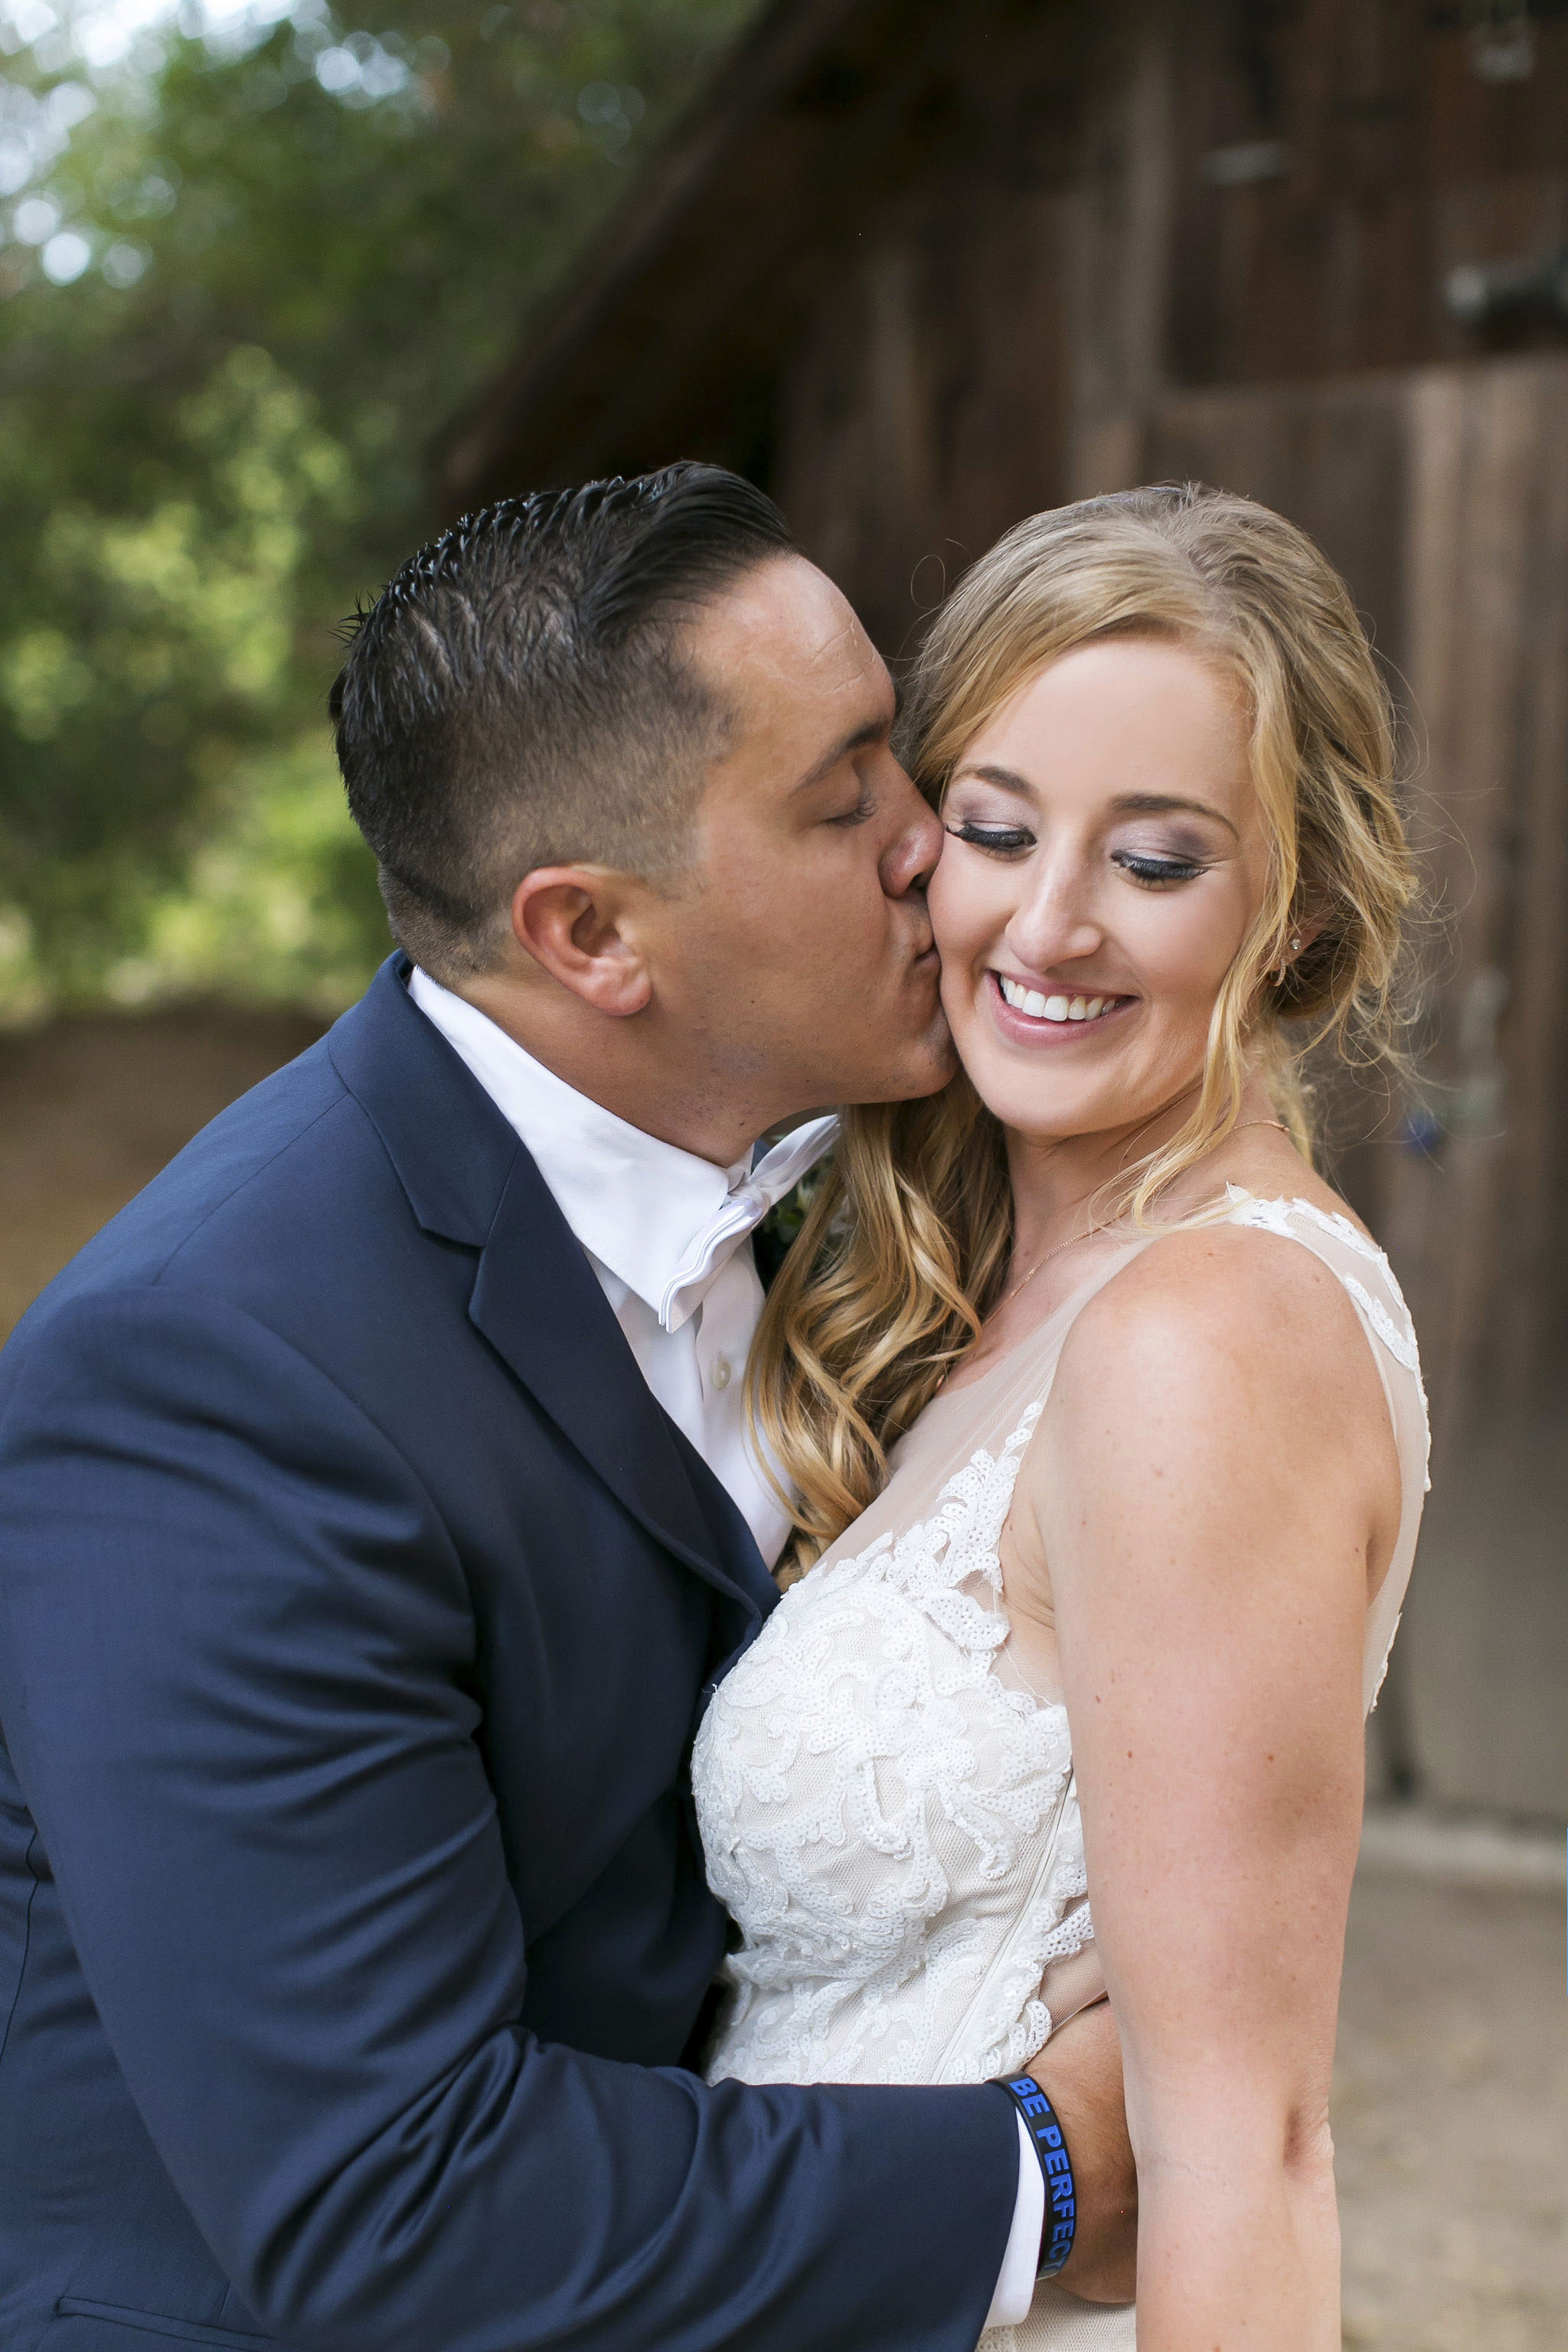 Domenica Beauty _ Hair and Makeup Artist _Wedding _ Temecula, CA _ Alexandra and Corey _ 29.JPG